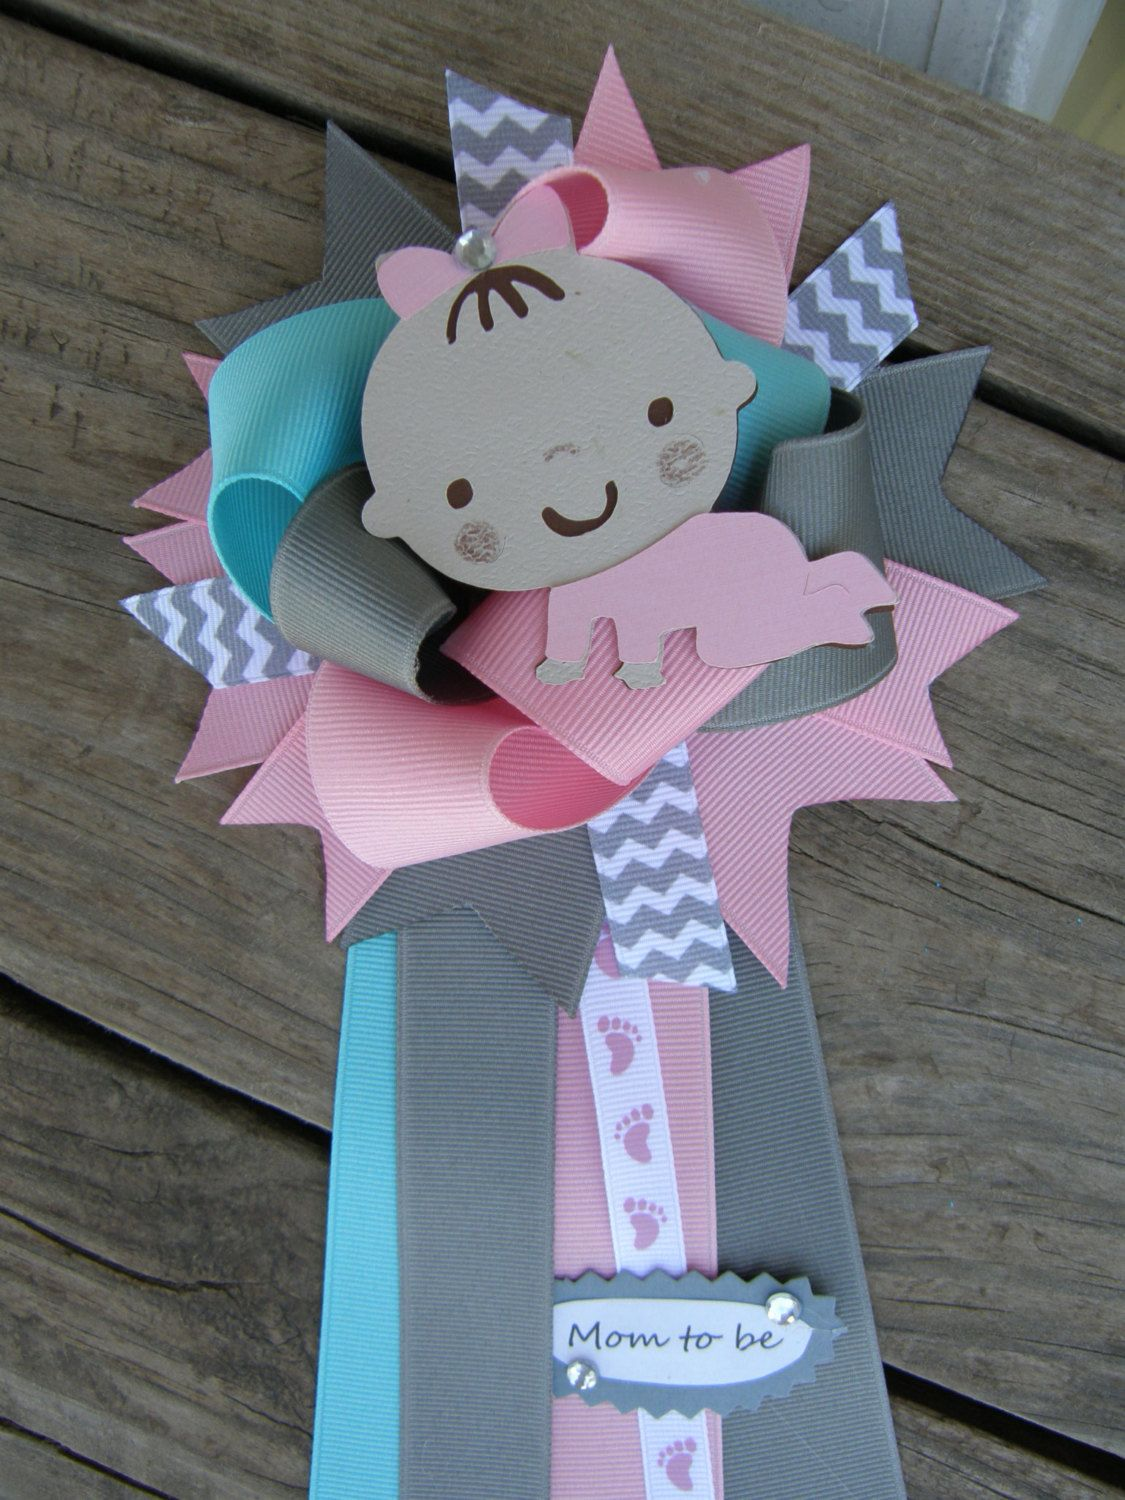 Baby girl baby shower corsagebaby shower pin by bonbow on etsy baby shower in 2019 pinterest - Candy diva futura ...